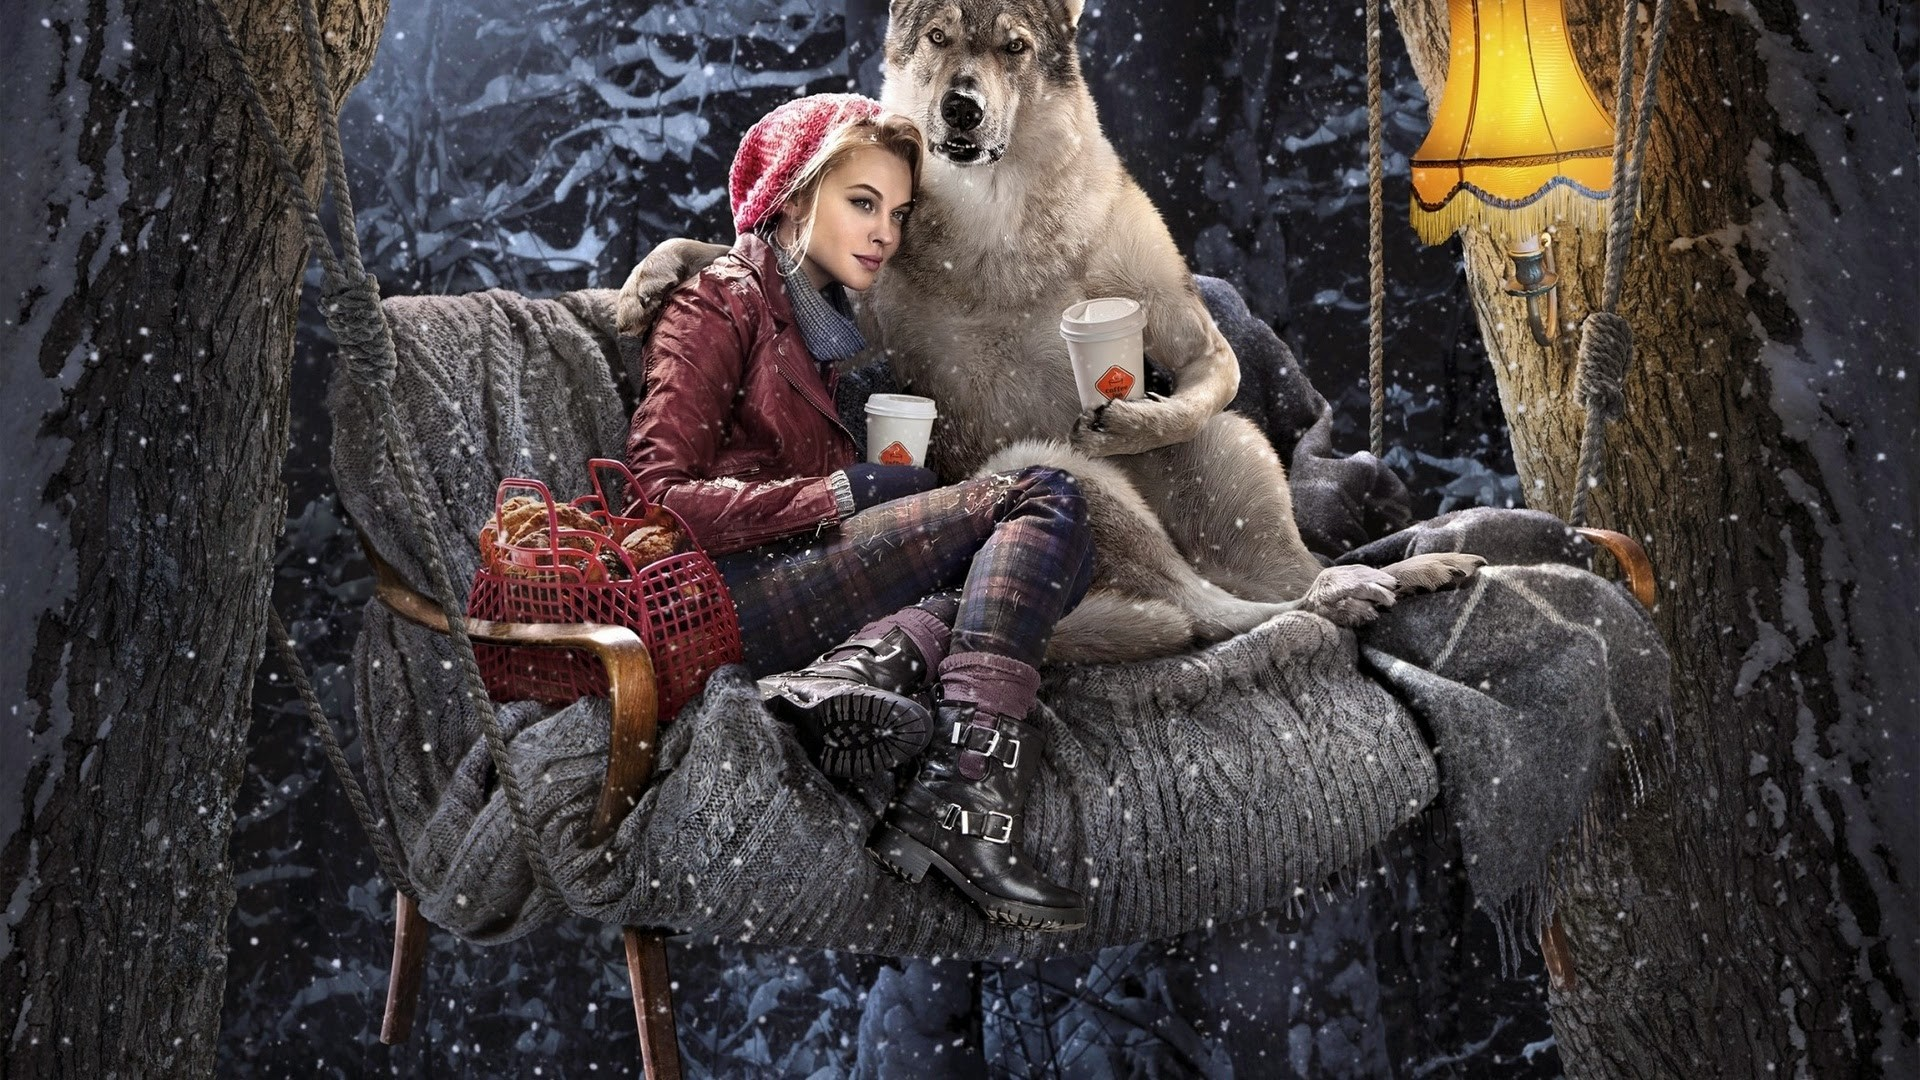 Red Riding Hood, wolf, drink coffee, forest, night, tree